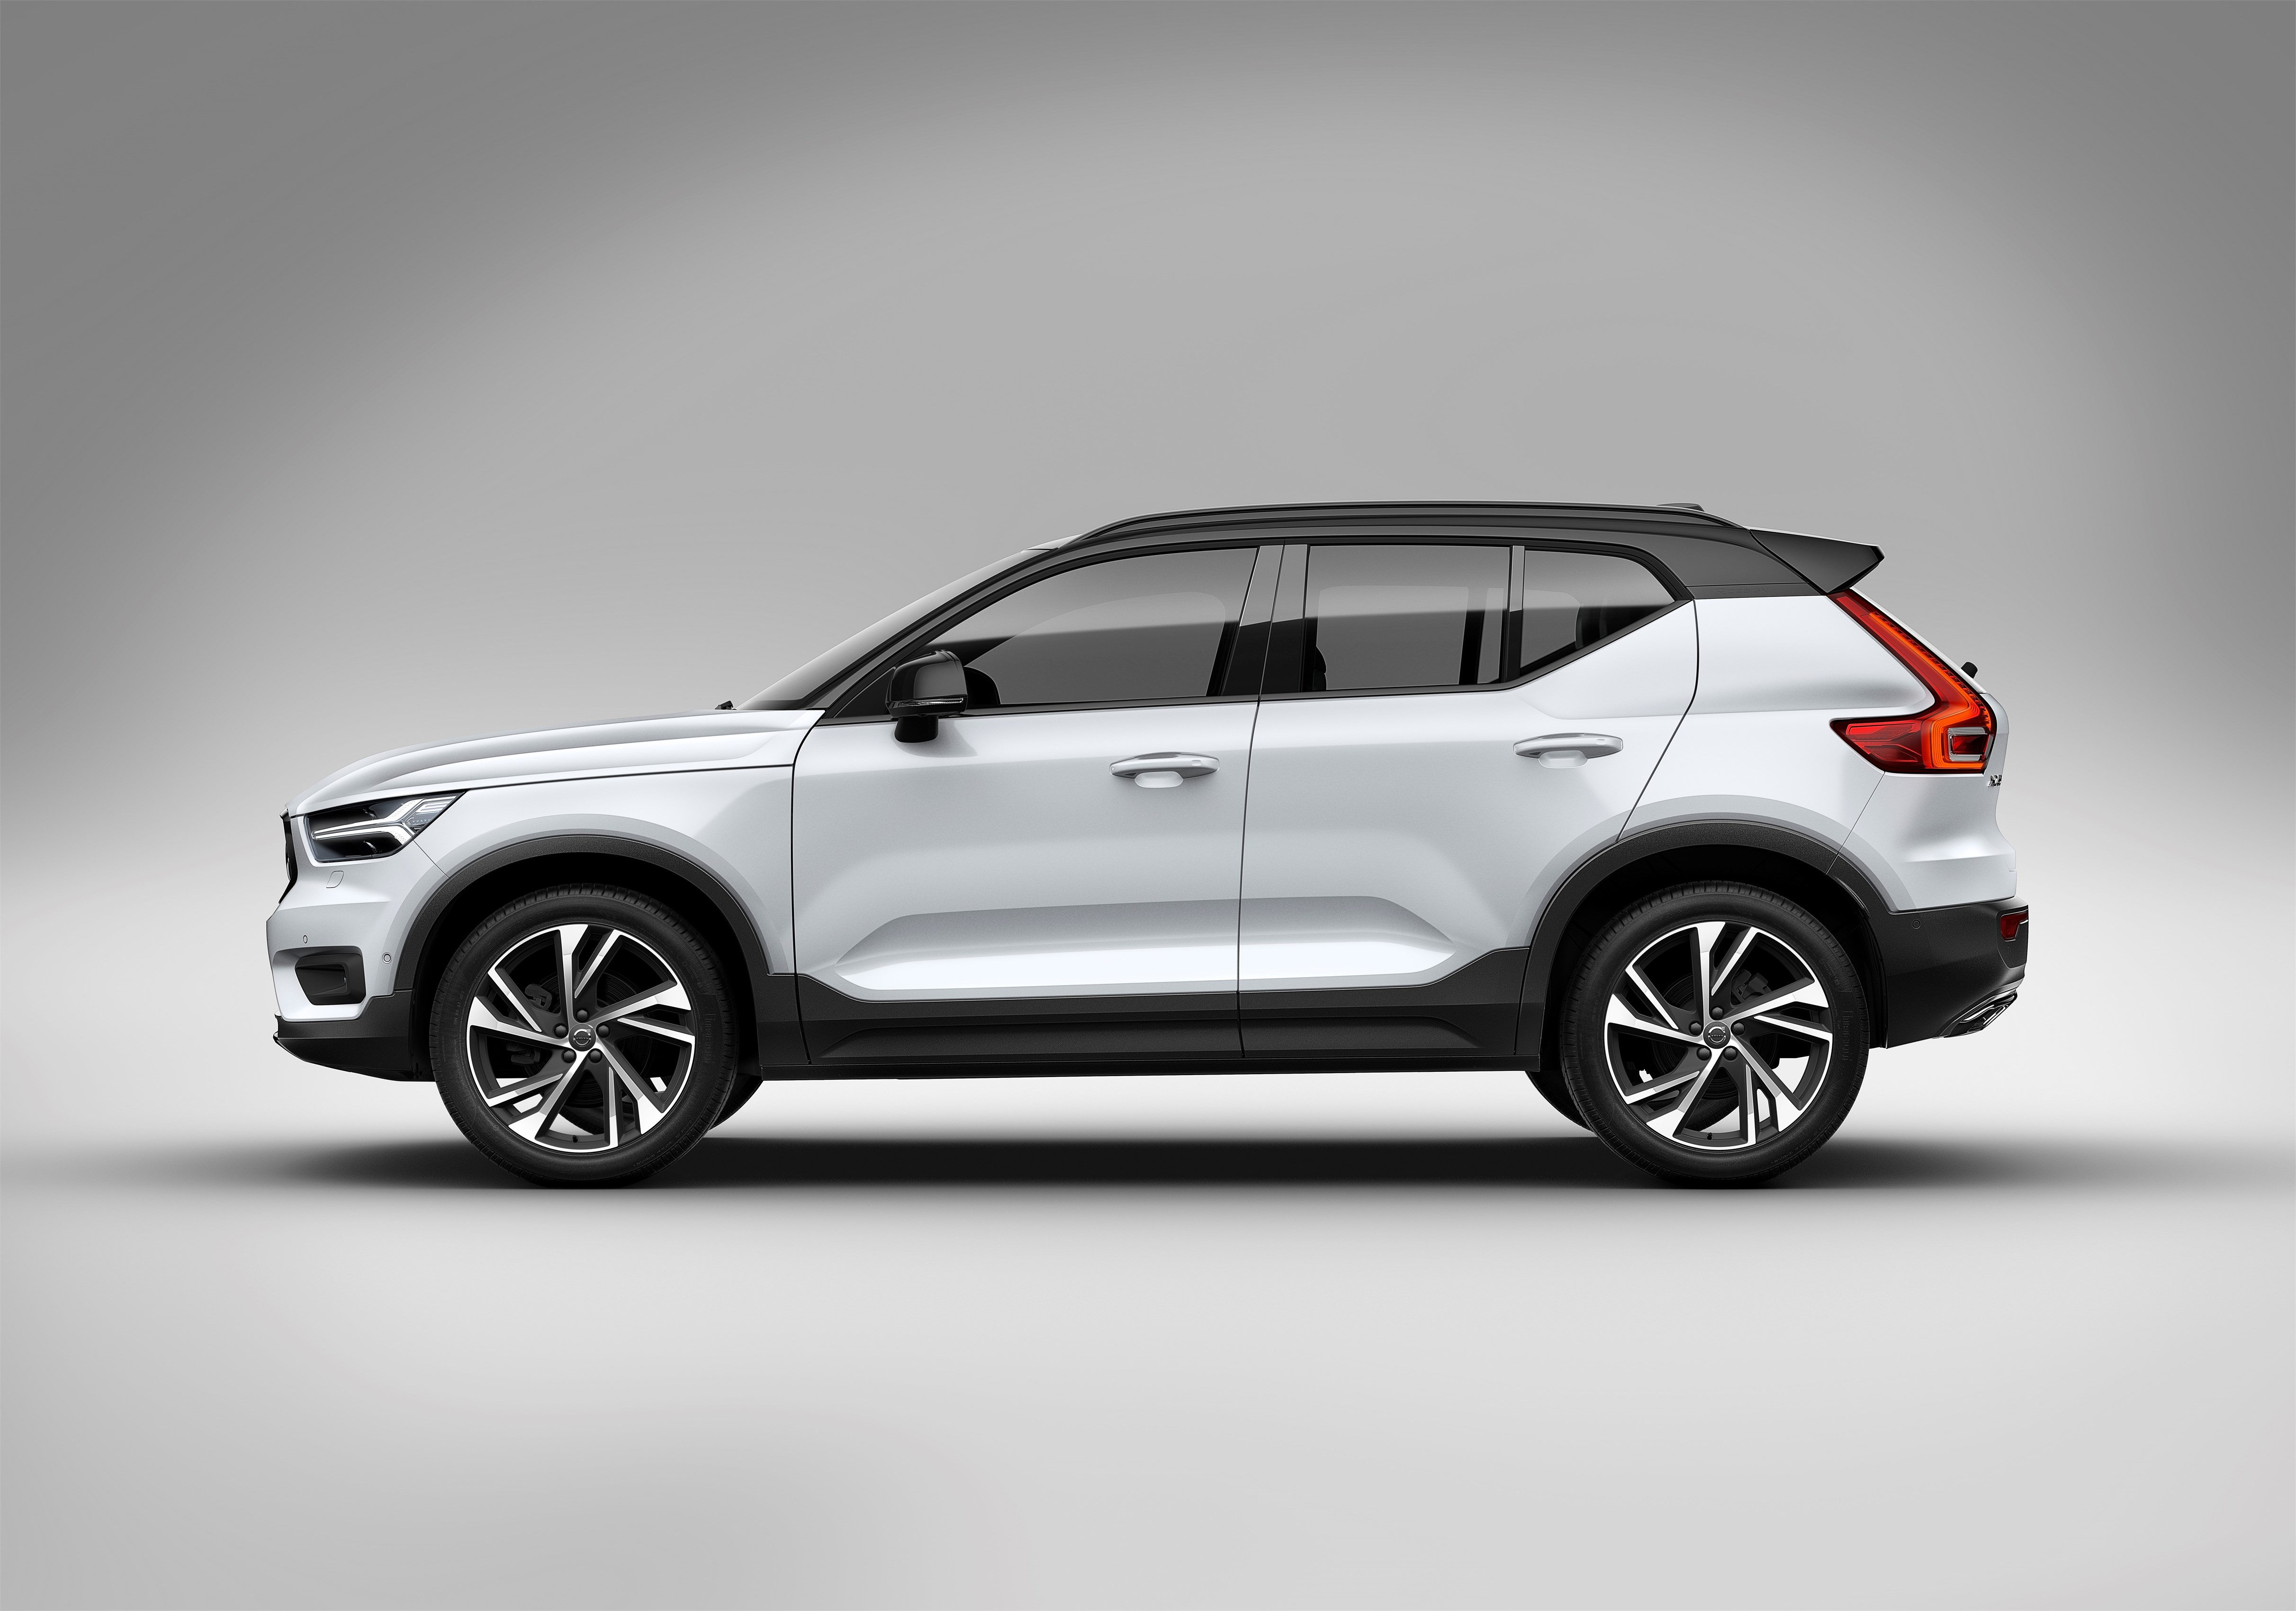 Gran Cherokee 2018 >> Volvo XC40 officially revealed – CMA platform, Drive-E engines, first model offered in 'Care by ...